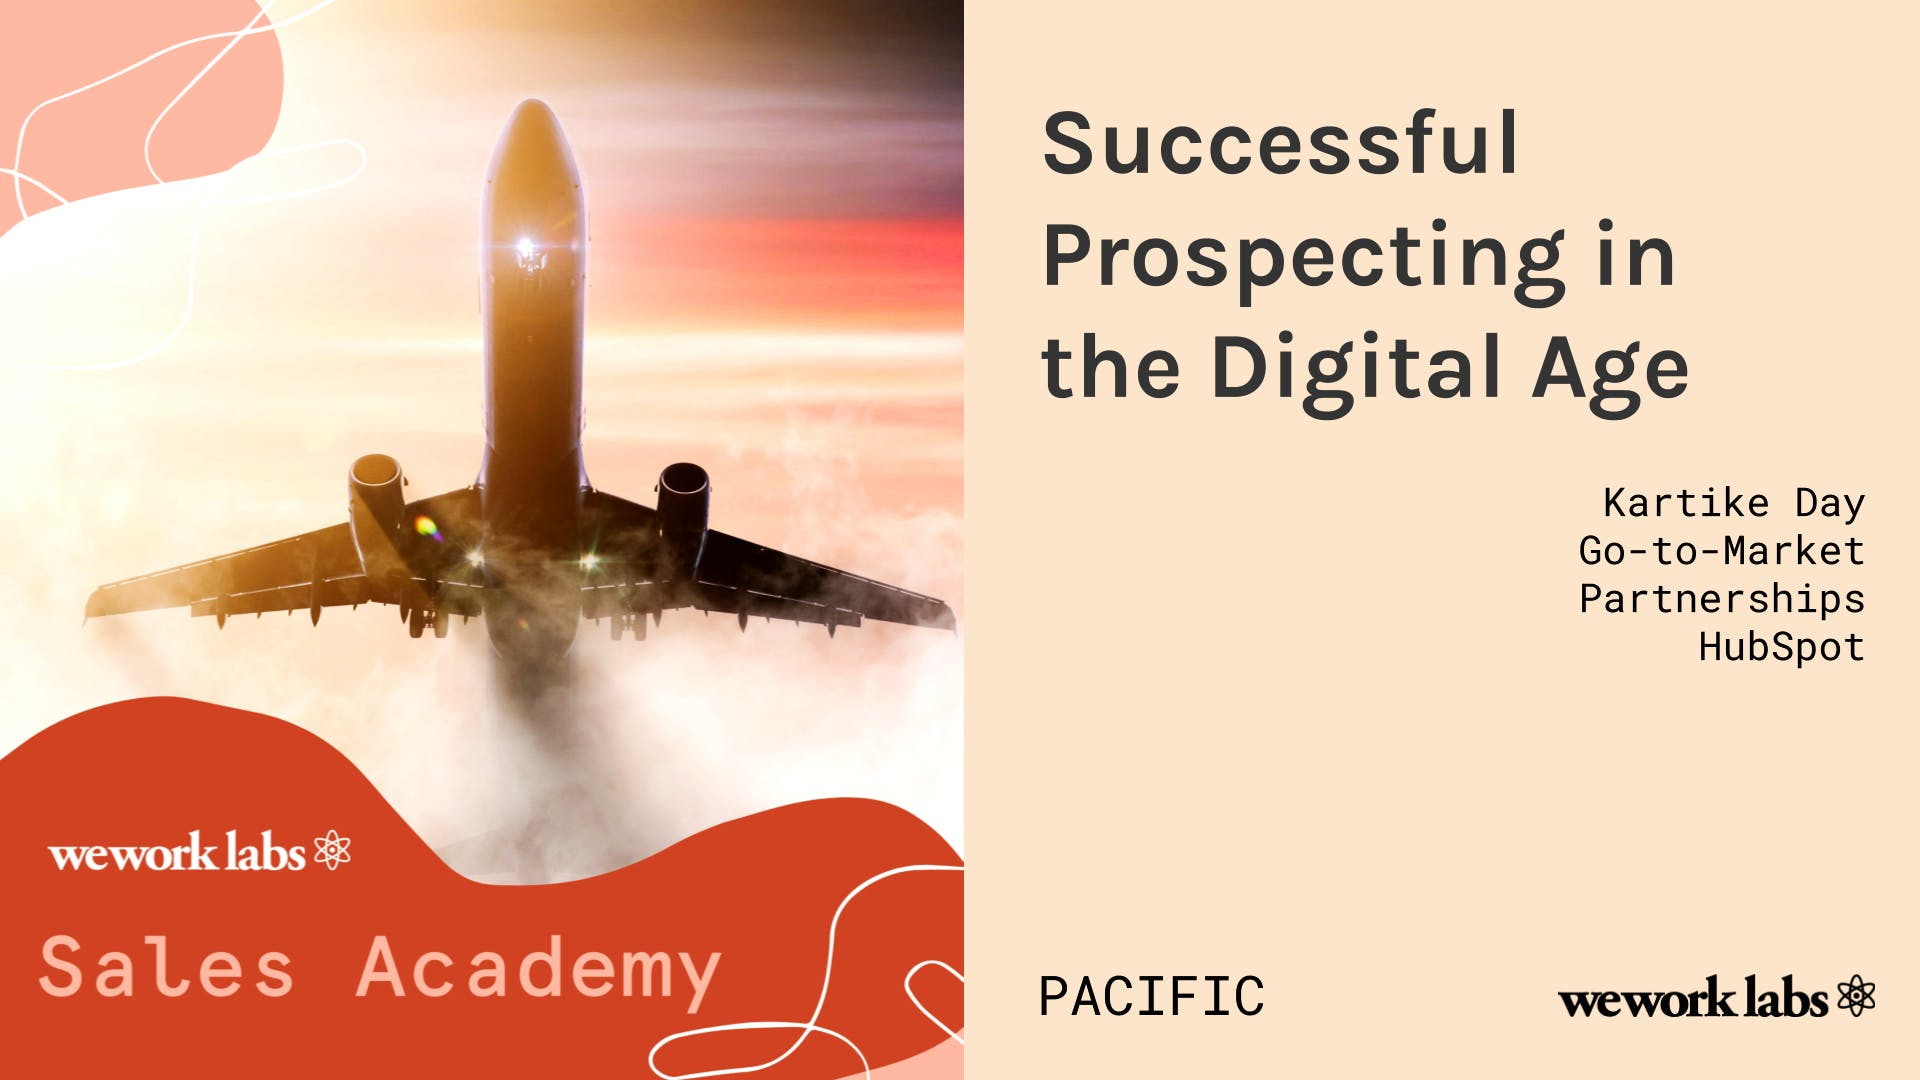 Sales Academy (Pacific): Successful Prospecting In the Digital Age